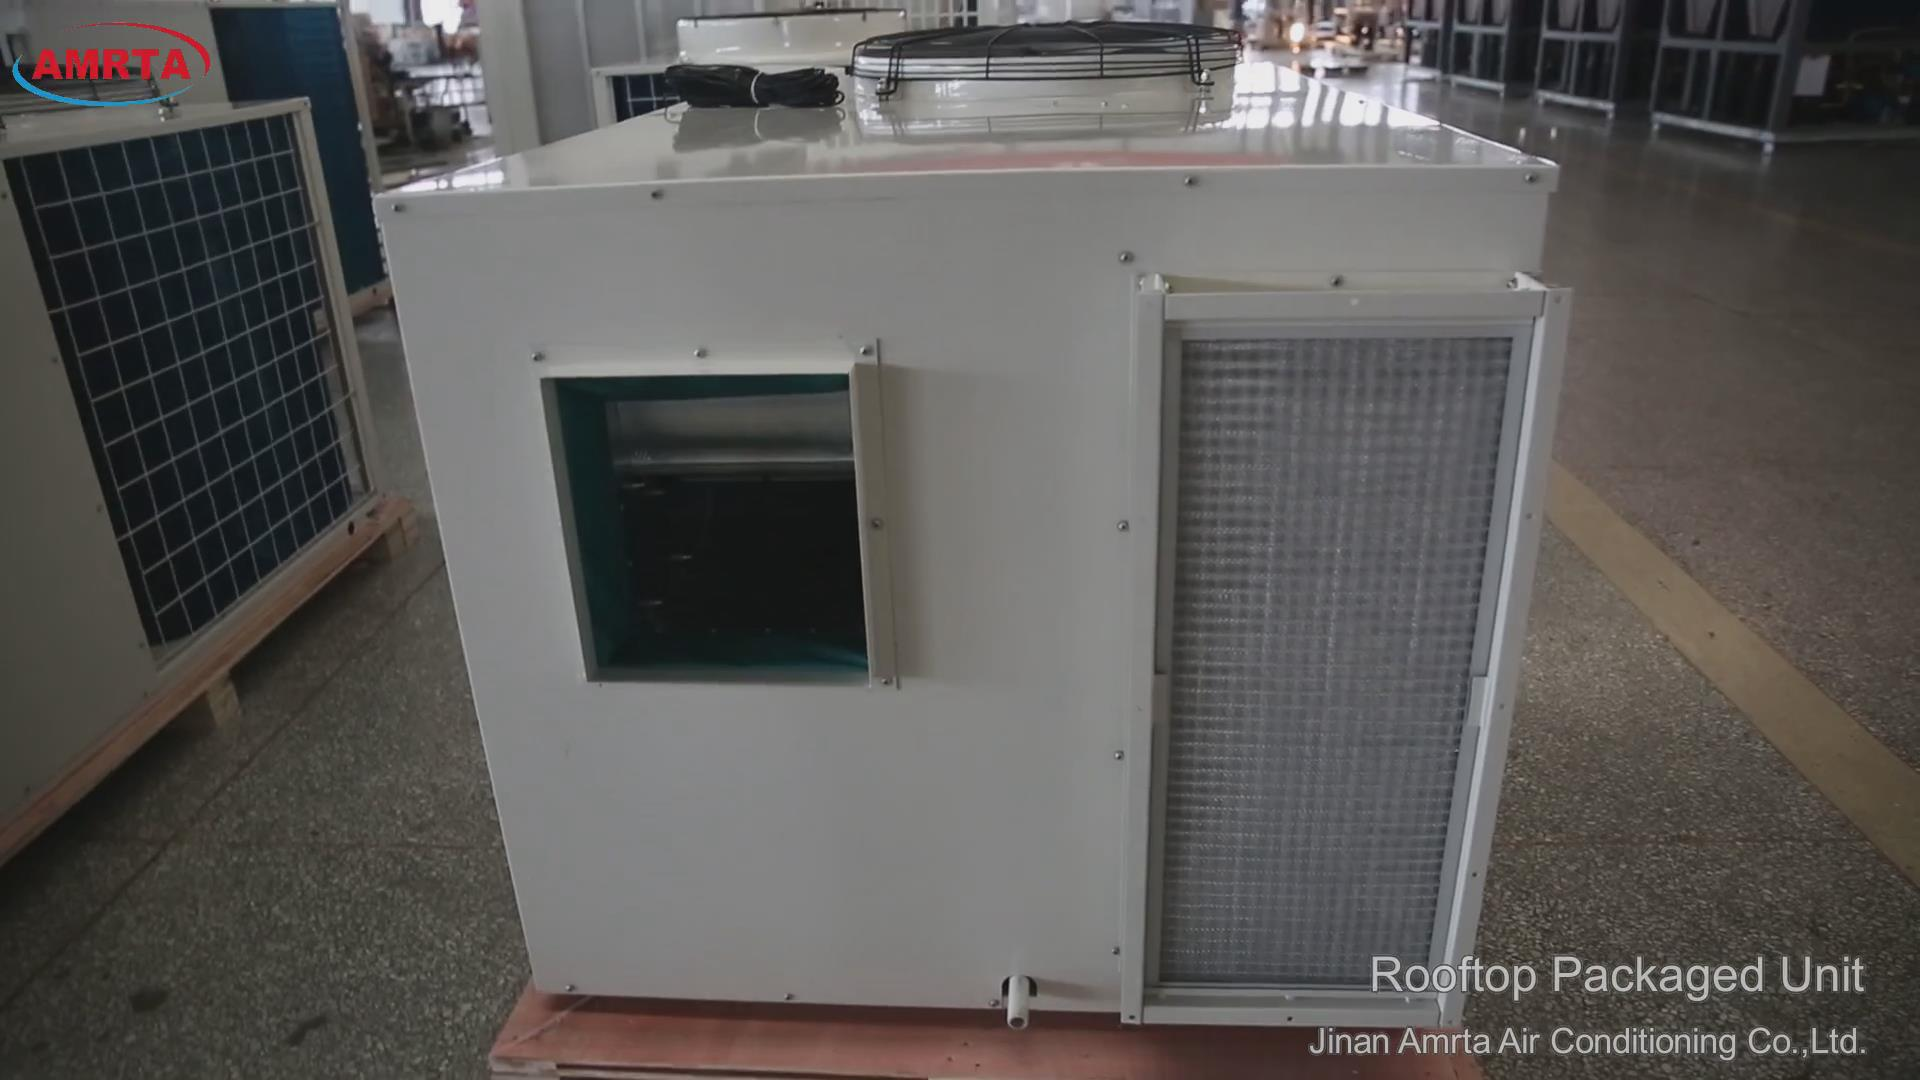 Customizable Multi-function Commercial Rooftop Packaged Unit